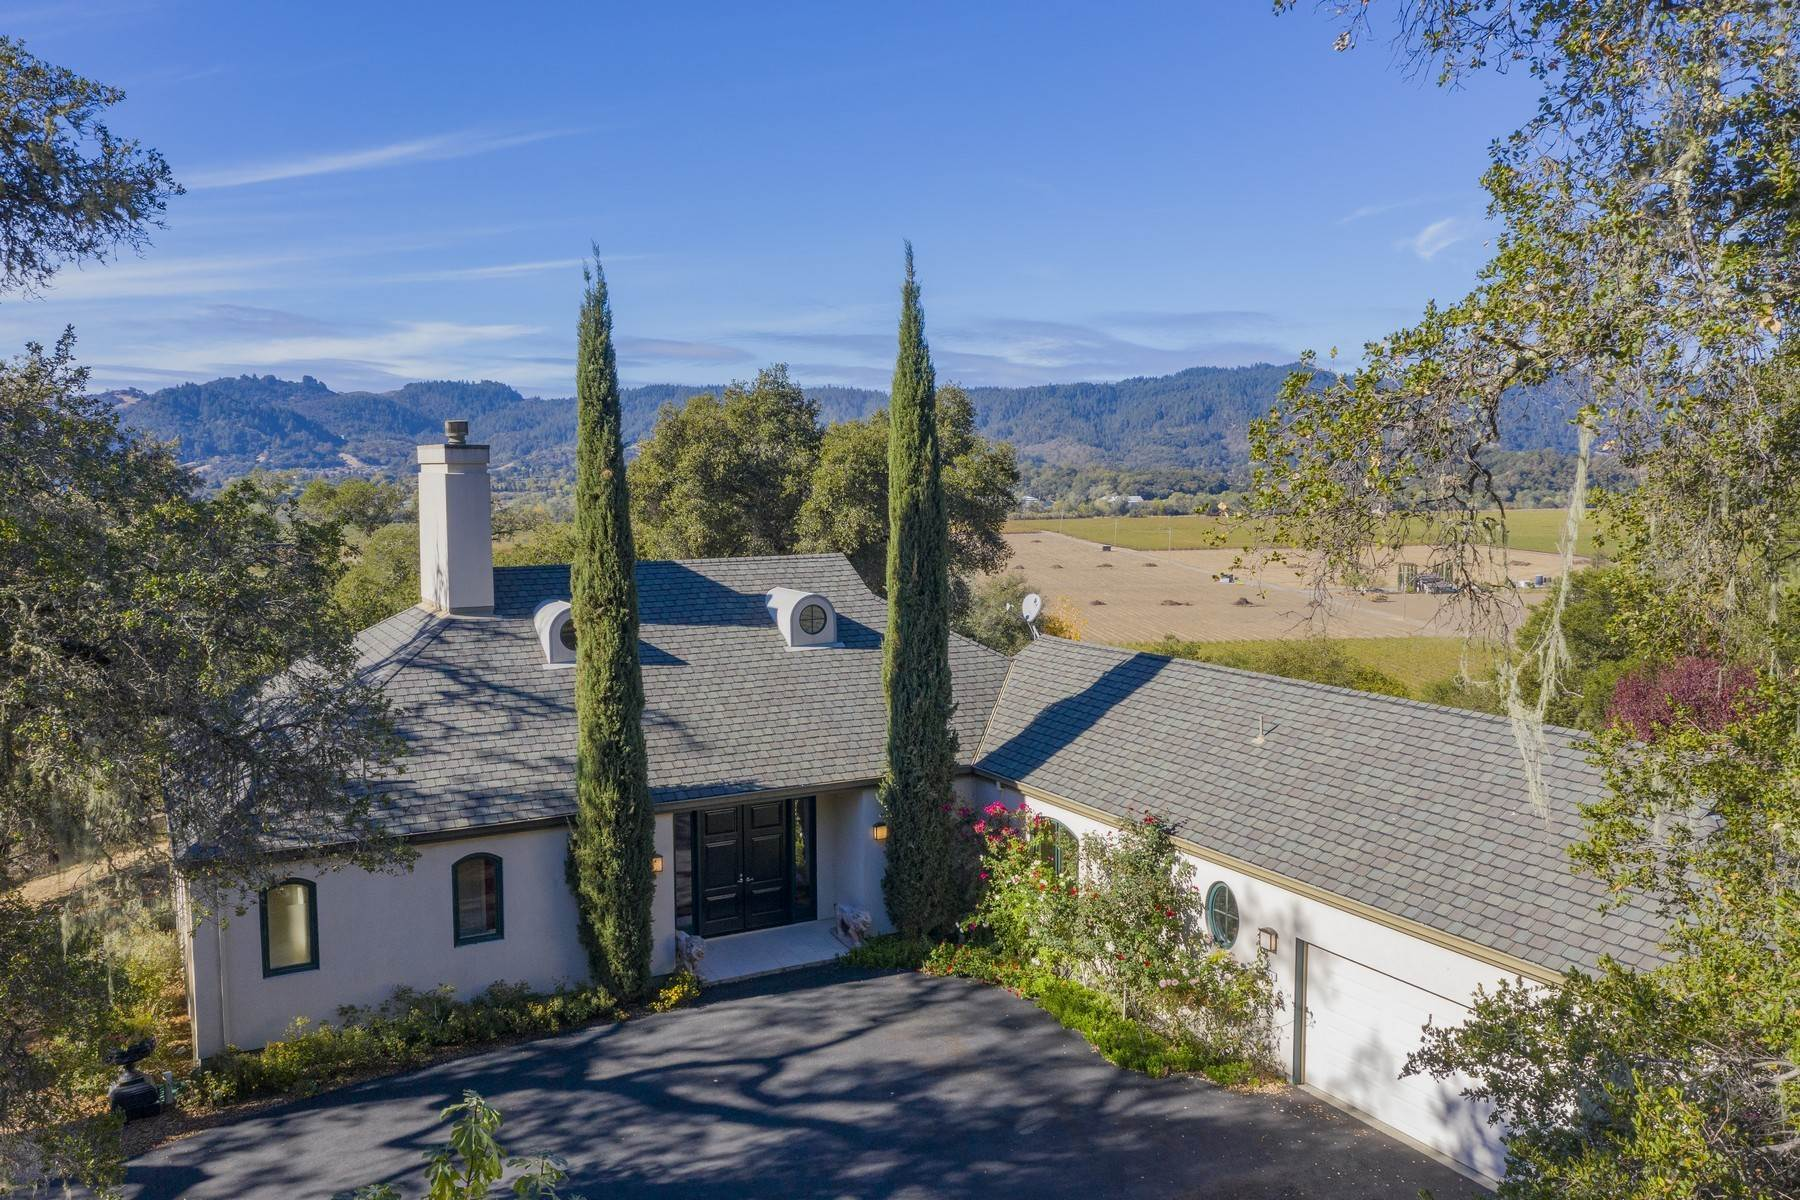 Single Family Homes のために 売買 アット Alexander Valley Chateau 1325 Trimble Lane Cloverdale, カリフォルニア 95425 アメリカ